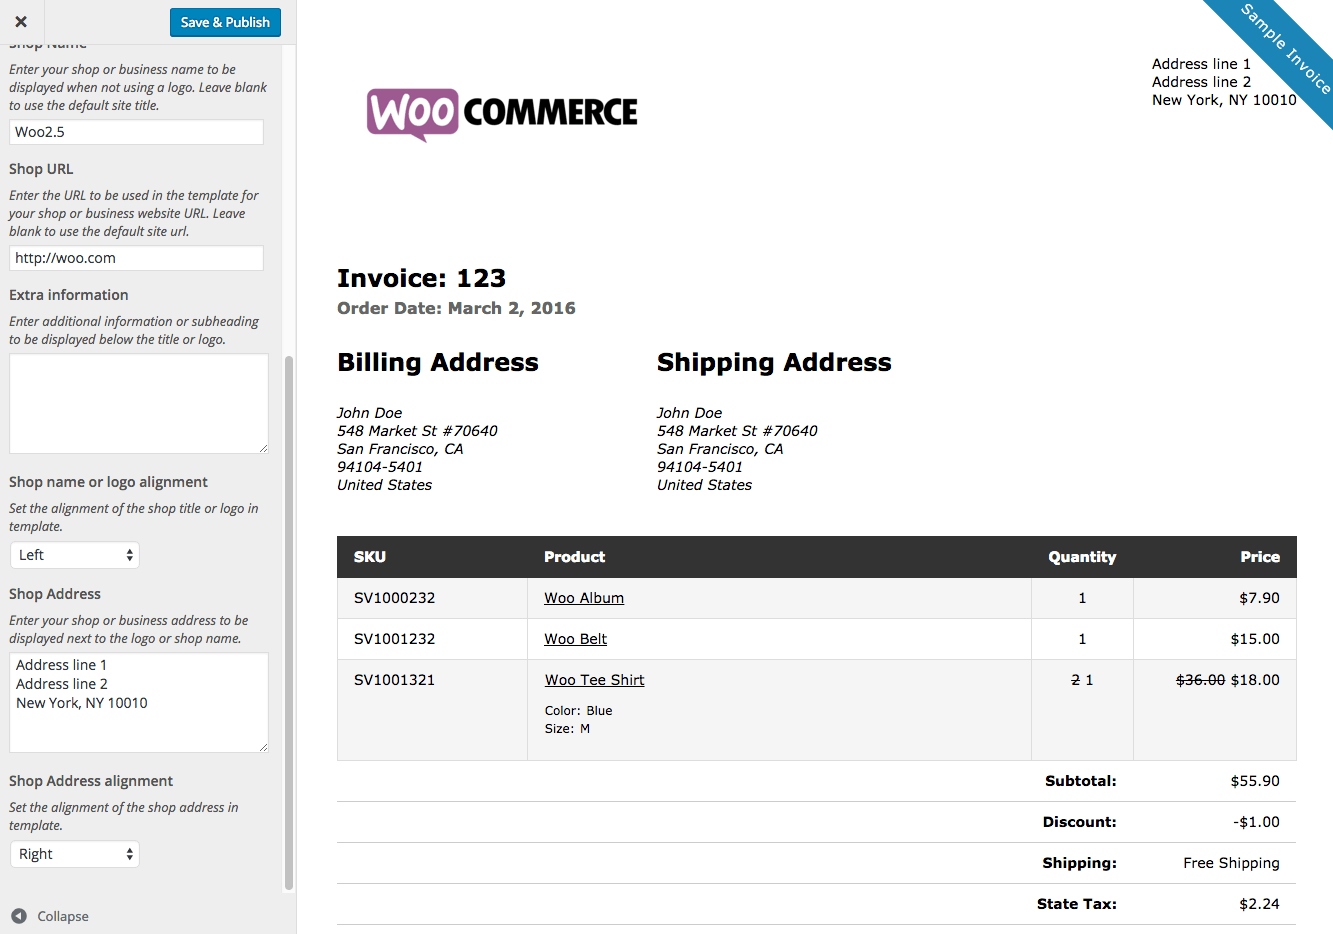 Floobydustus  Picturesque Woocommerce Print Invoices Amp Packing Lists  Woocommerce Docs With Excellent Woocommerce Print Invoices  Packing Lists Customizer With Cool Coffee Receipt Also View Electronic Ticket Receipt In Addition Trust Receipt Form And Baking Receipts As Well As Indian Rent Receipt Format Additionally Downloadable Receipts From Docswoocommercecom With Floobydustus  Excellent Woocommerce Print Invoices Amp Packing Lists  Woocommerce Docs With Cool Woocommerce Print Invoices  Packing Lists Customizer And Picturesque Coffee Receipt Also View Electronic Ticket Receipt In Addition Trust Receipt Form From Docswoocommercecom